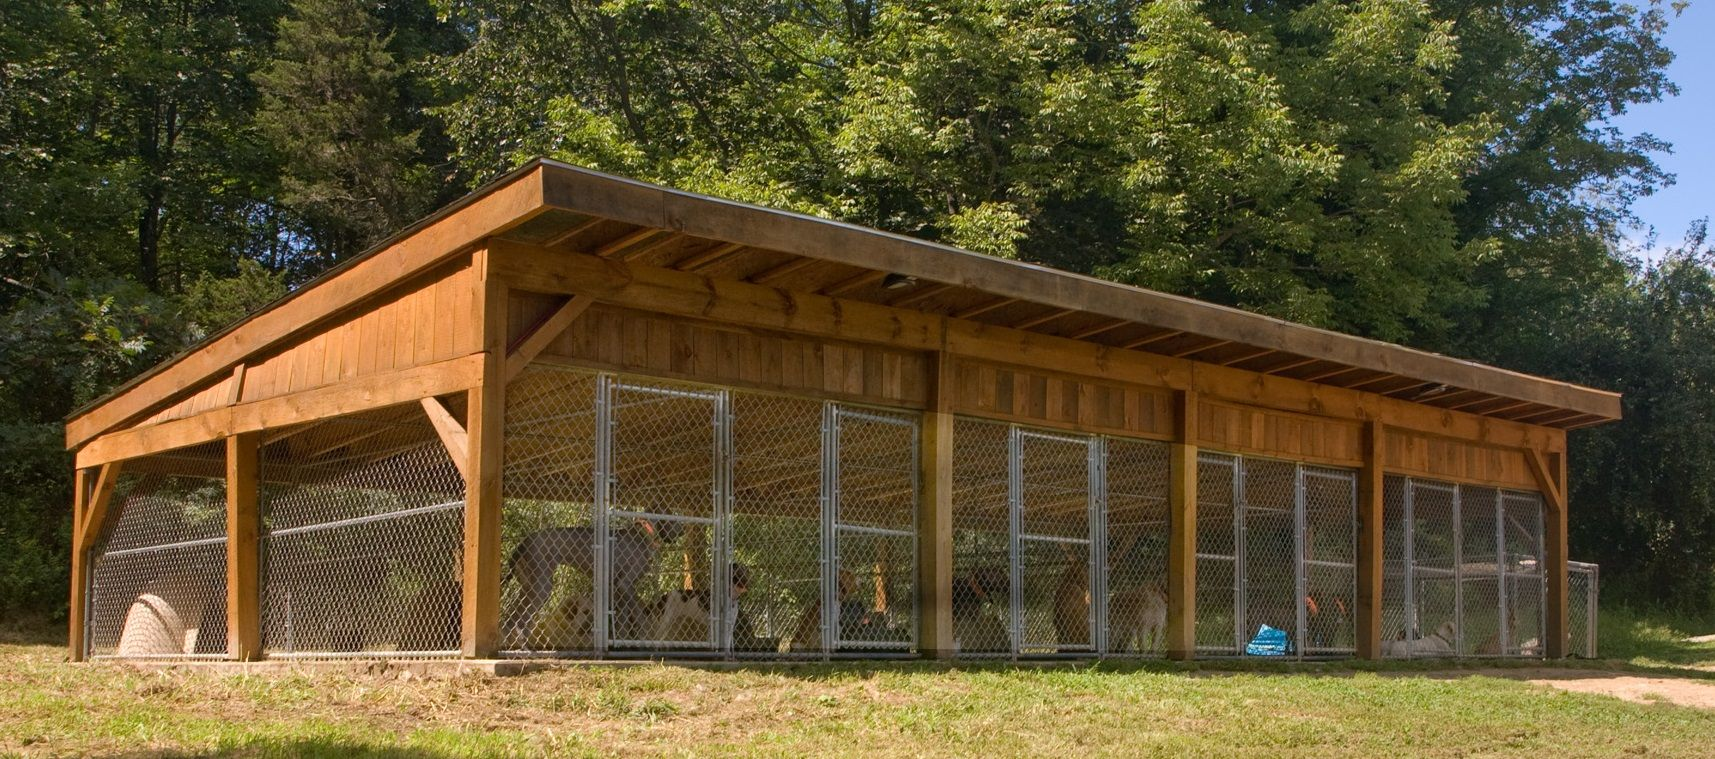 Hunting Dog Kennel Designs - Bing Images | Dog Kennel designs ...